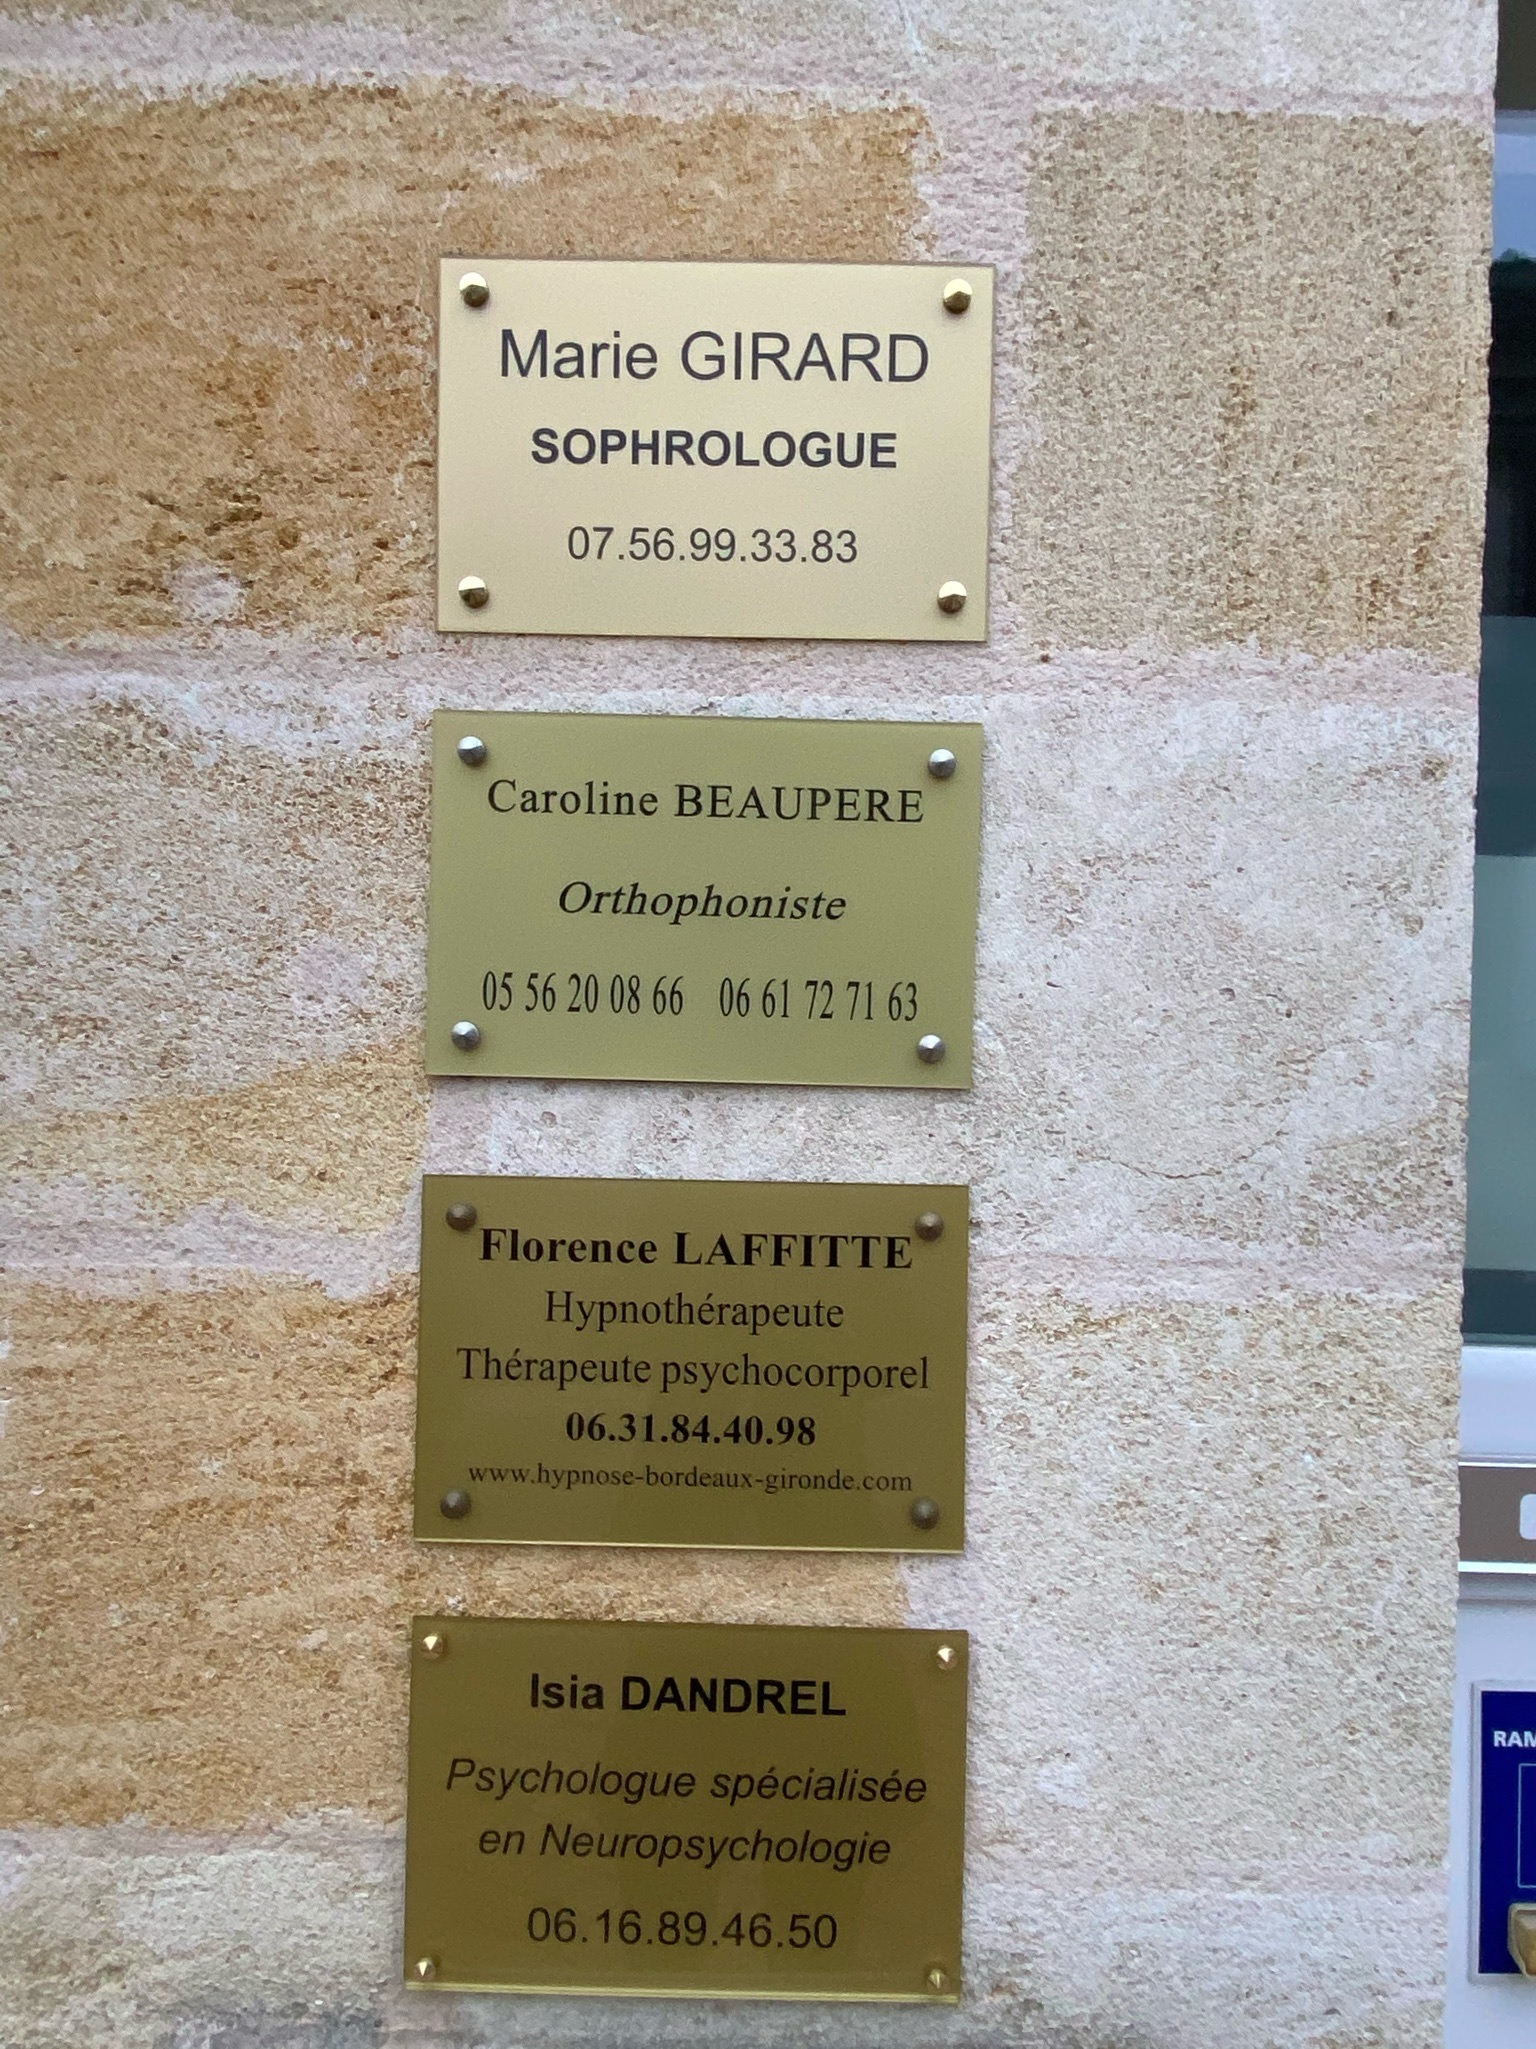 Galerie d'image - INSPIRation MG * Marie GIRARD